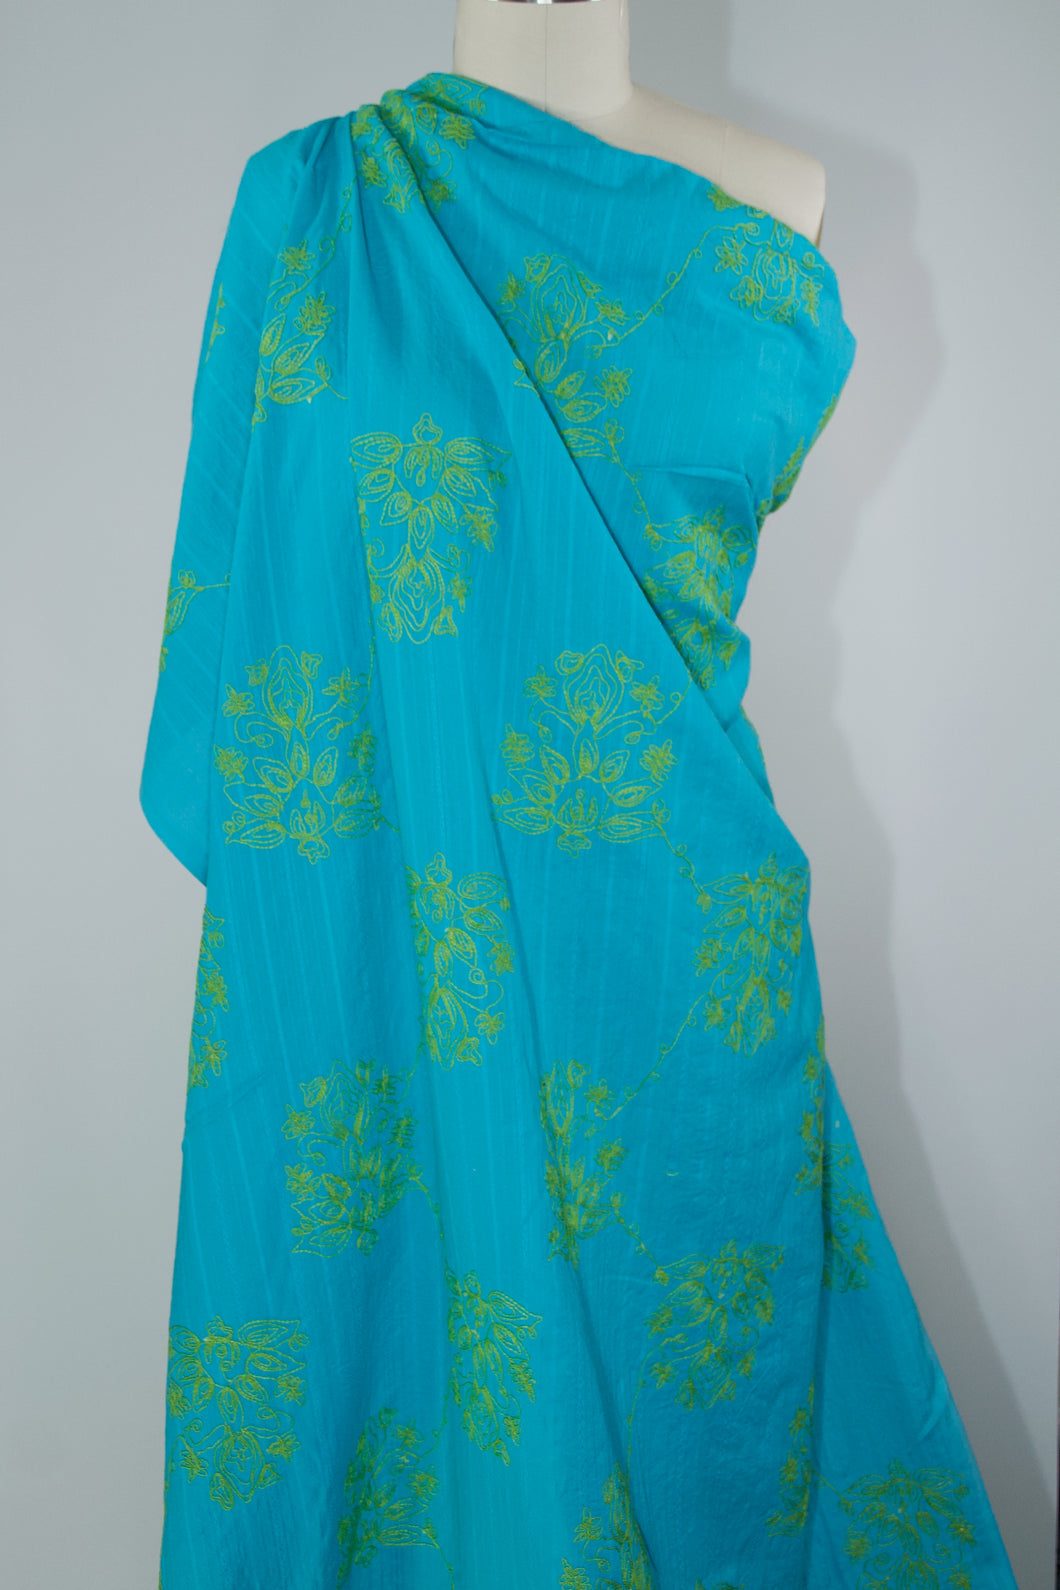 Japanese Embroidered Cotton Jacquard - Bright Teal/Lime